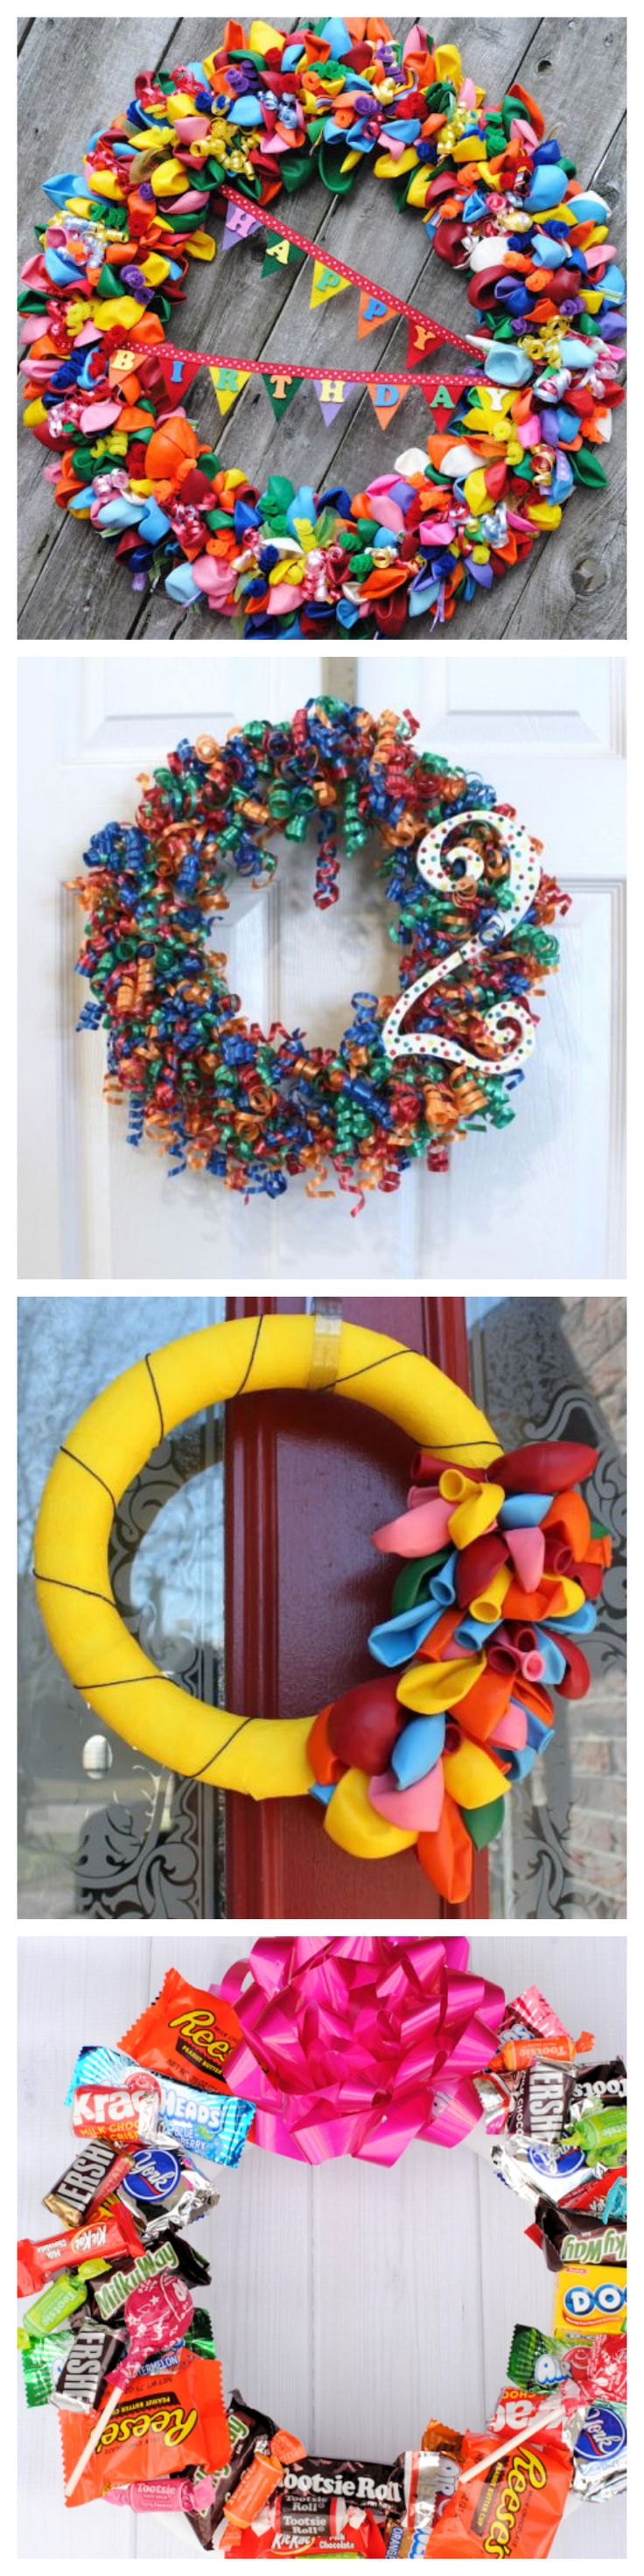 Birthday Party Wreaths #partyideas #DIY